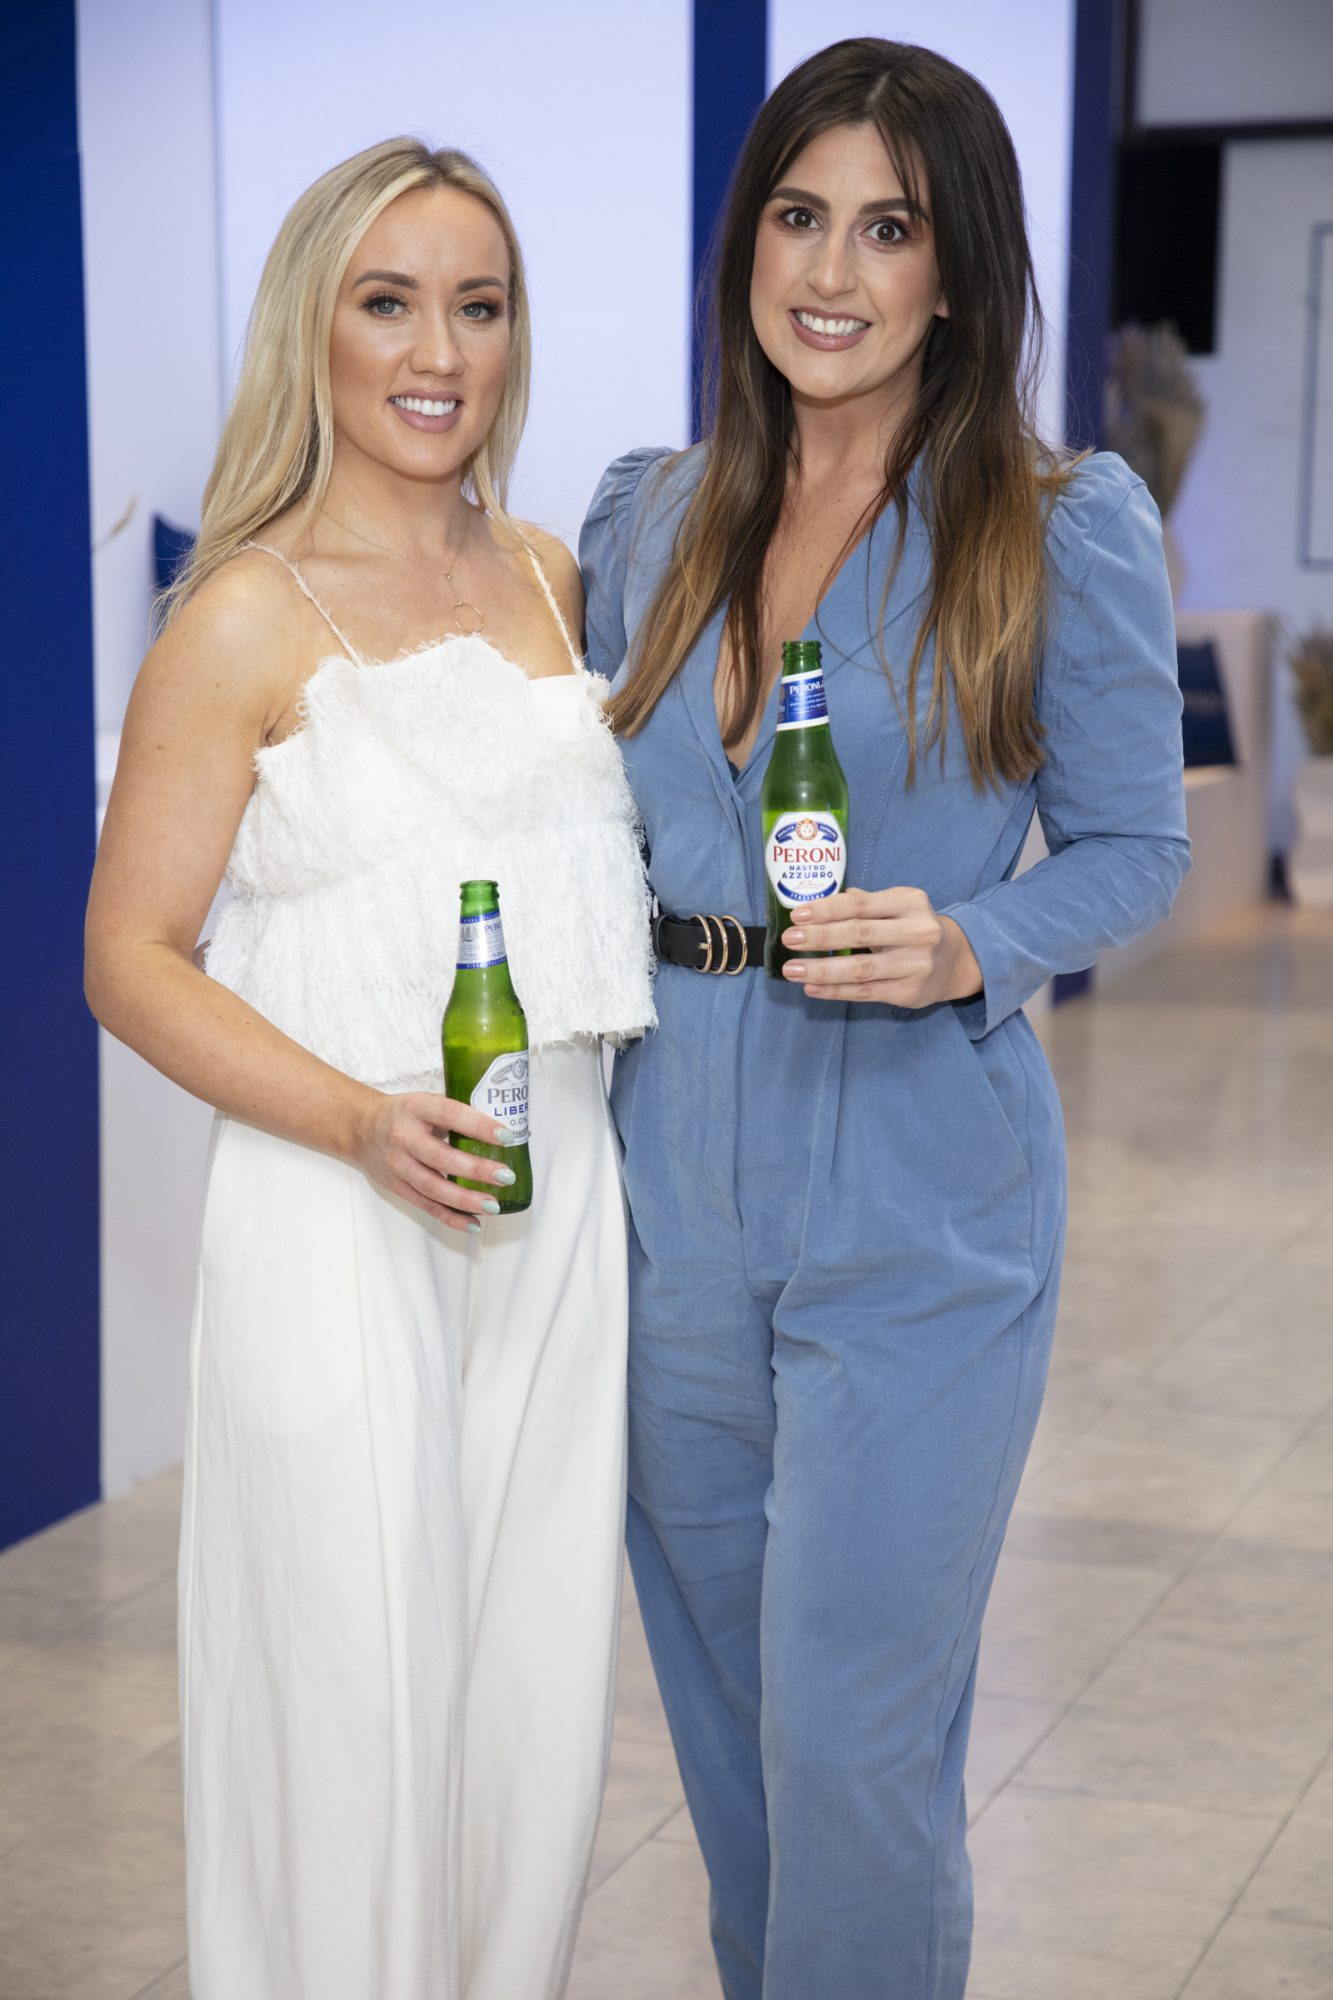 Fiona Stone & Becky Russell pictured at the launch of The House of Peroni, which is open at the RHA in Dublin until Sunday, 1st September 2019. This year's residency sees the RHA transformed into a stylish Peroni inspired experience, filled with food, drink and design. www.thehouseofperoni.com Photo: Anthony Woods.